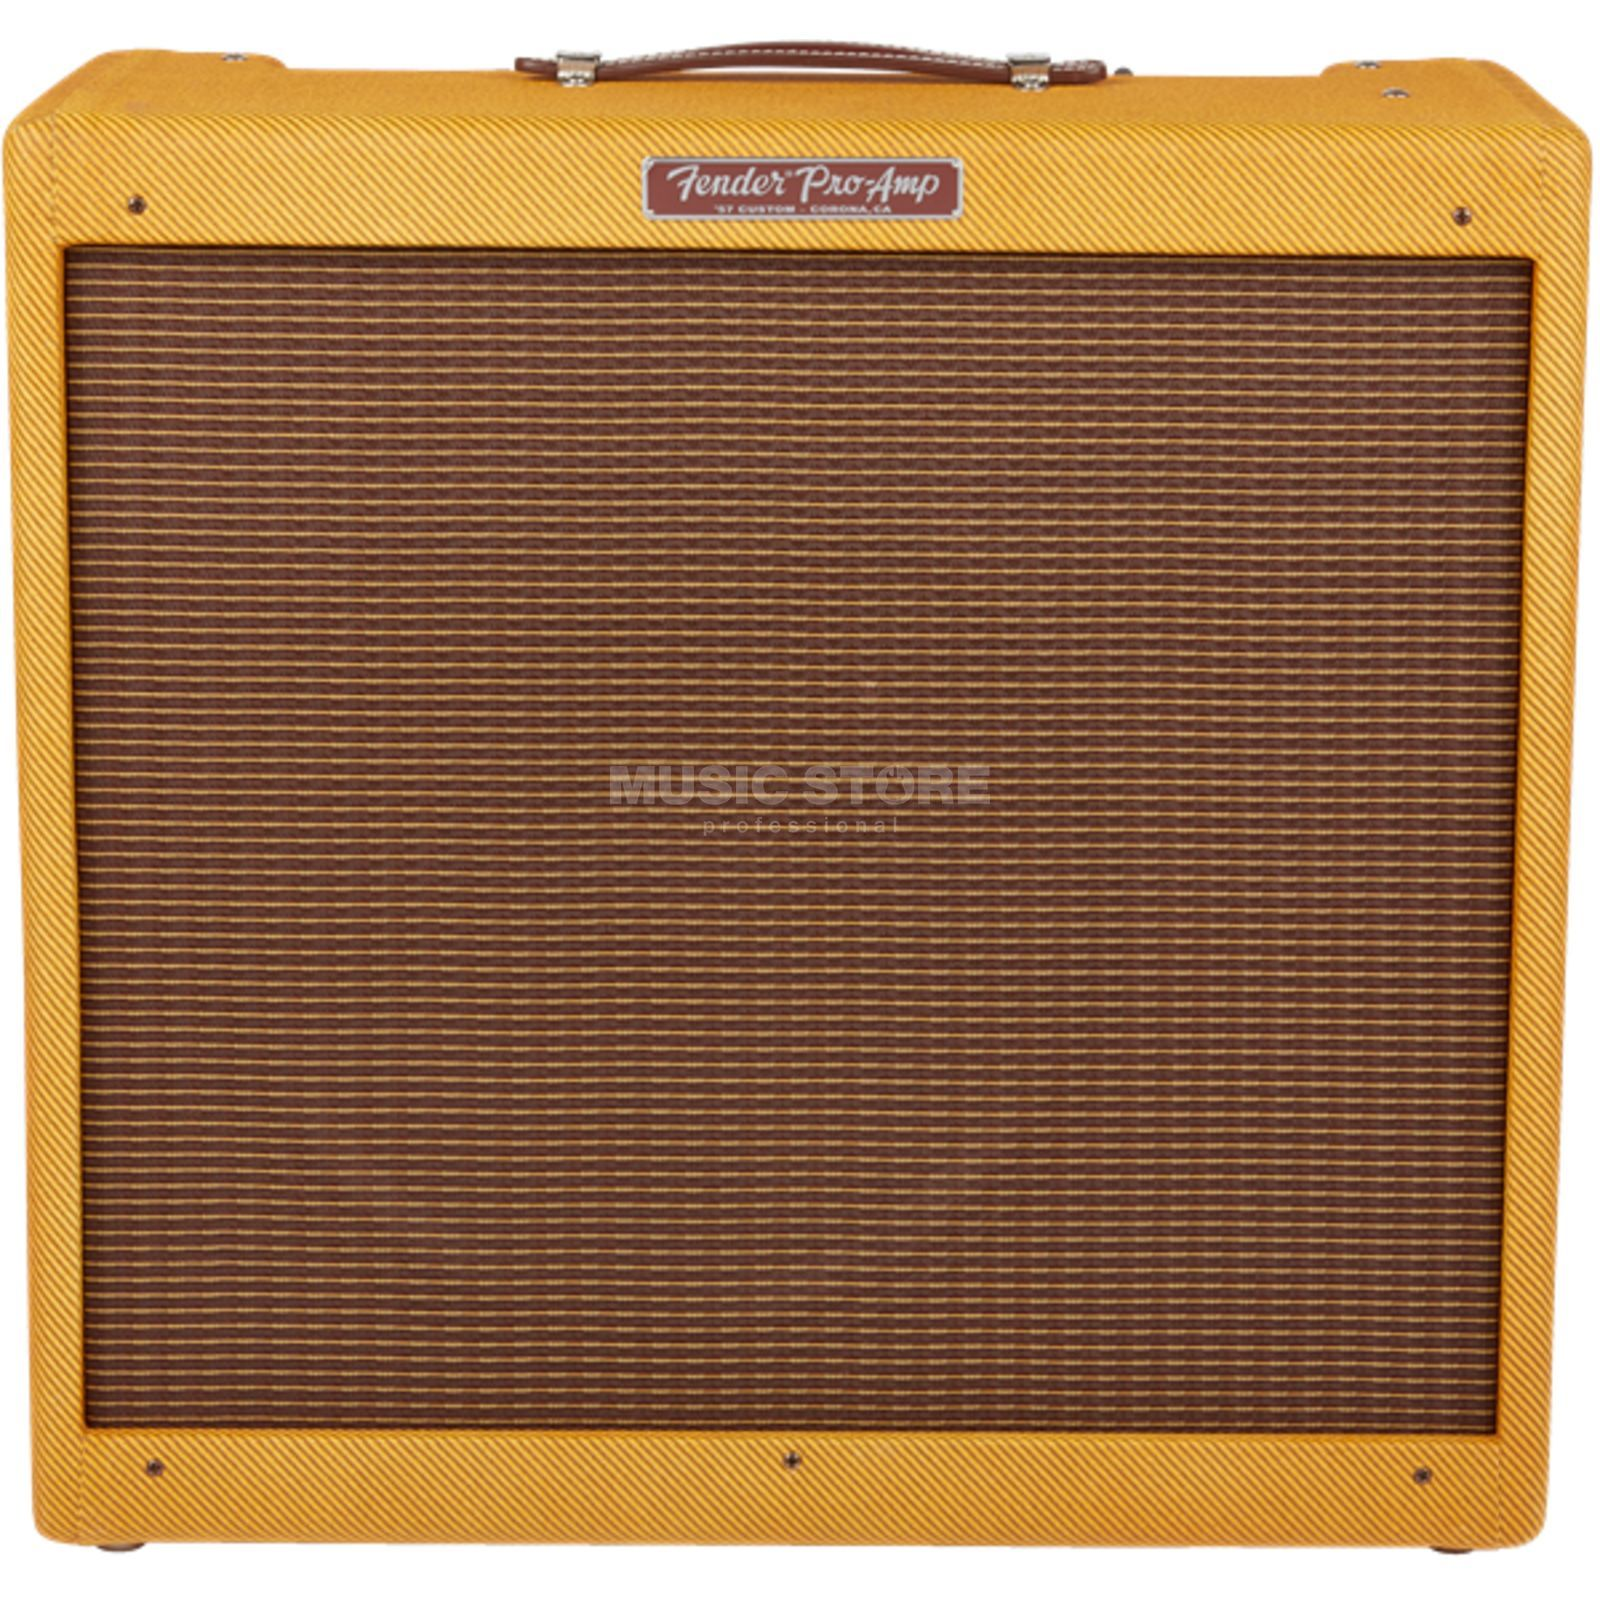 Fender '57 Custom Pro-Amp Product Image